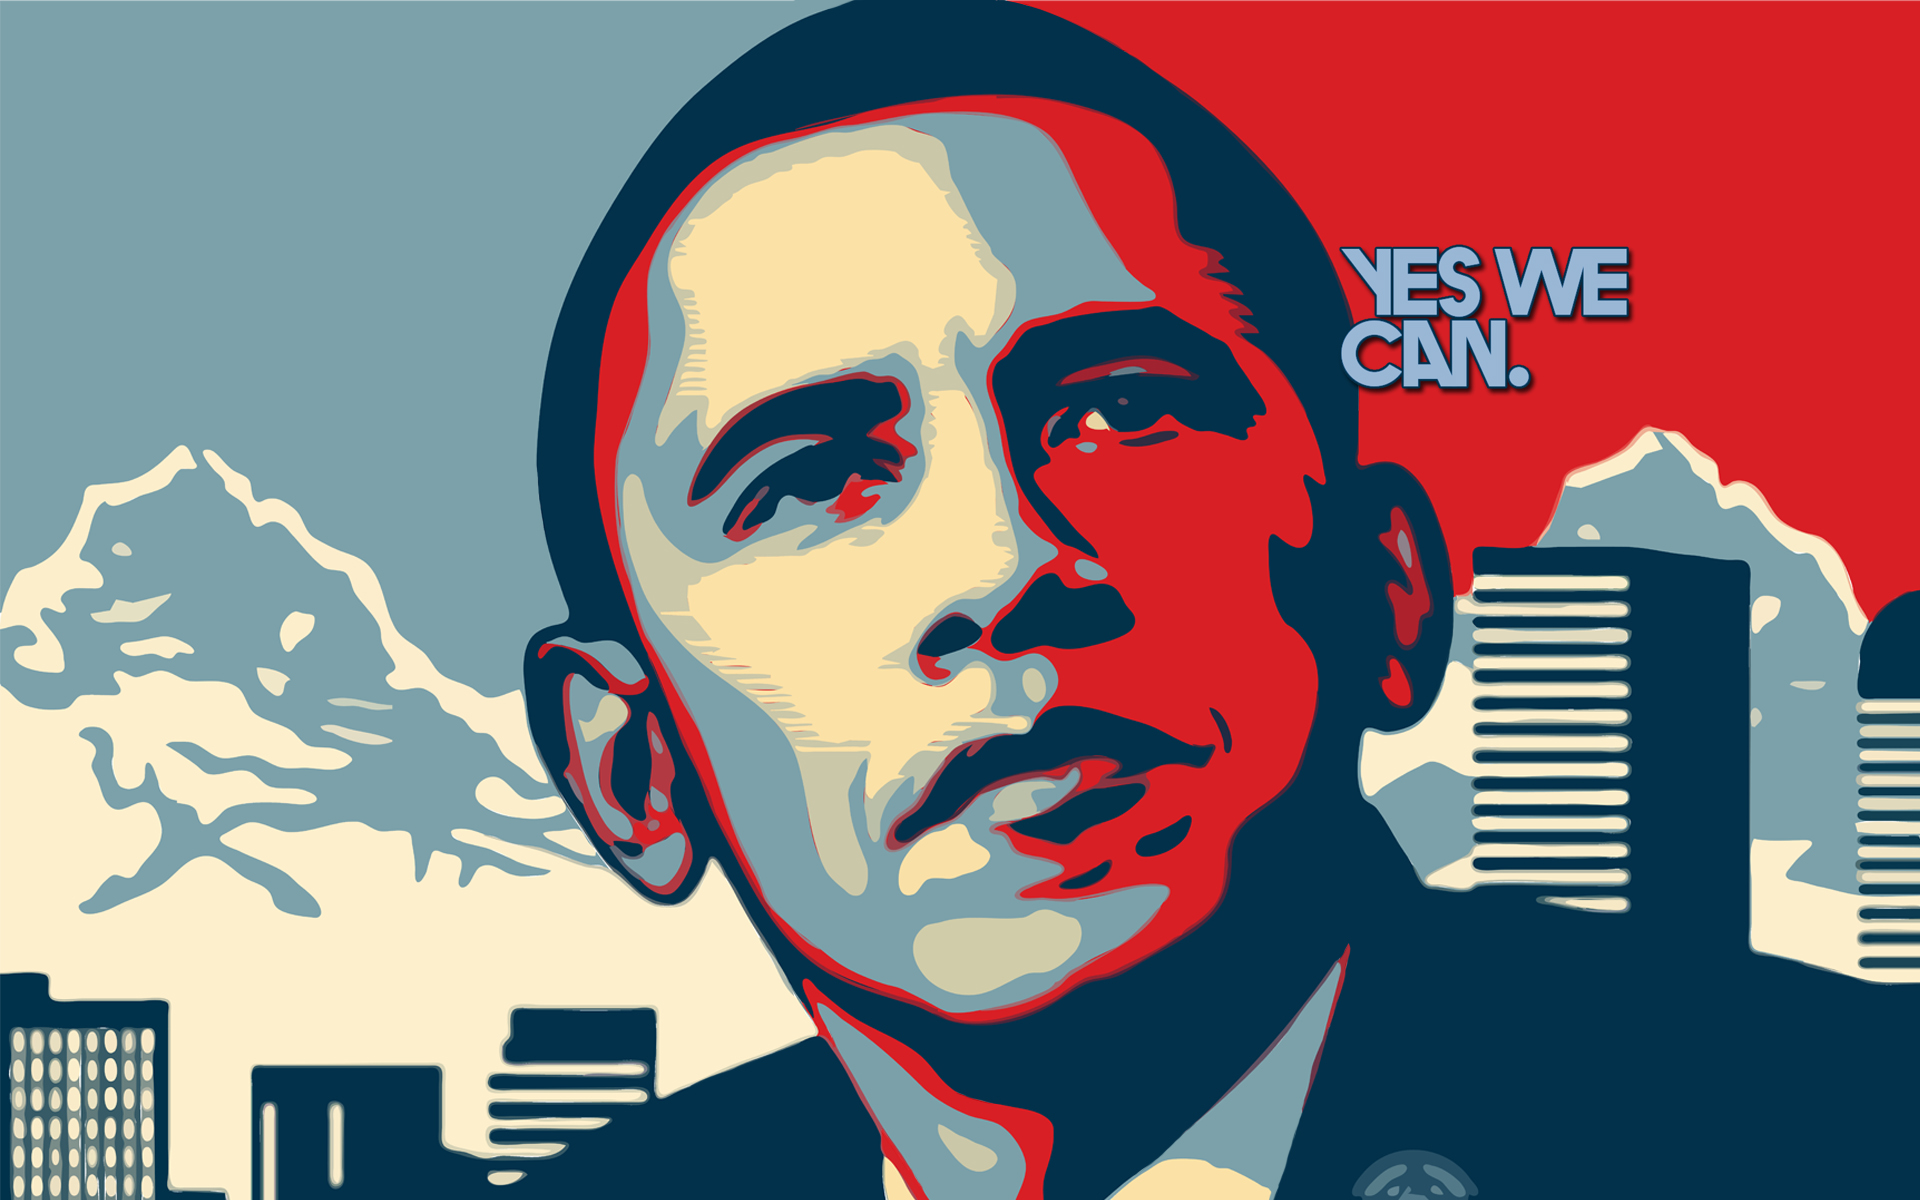 Obama Wallpaper ImageBankbiz 1920x1200